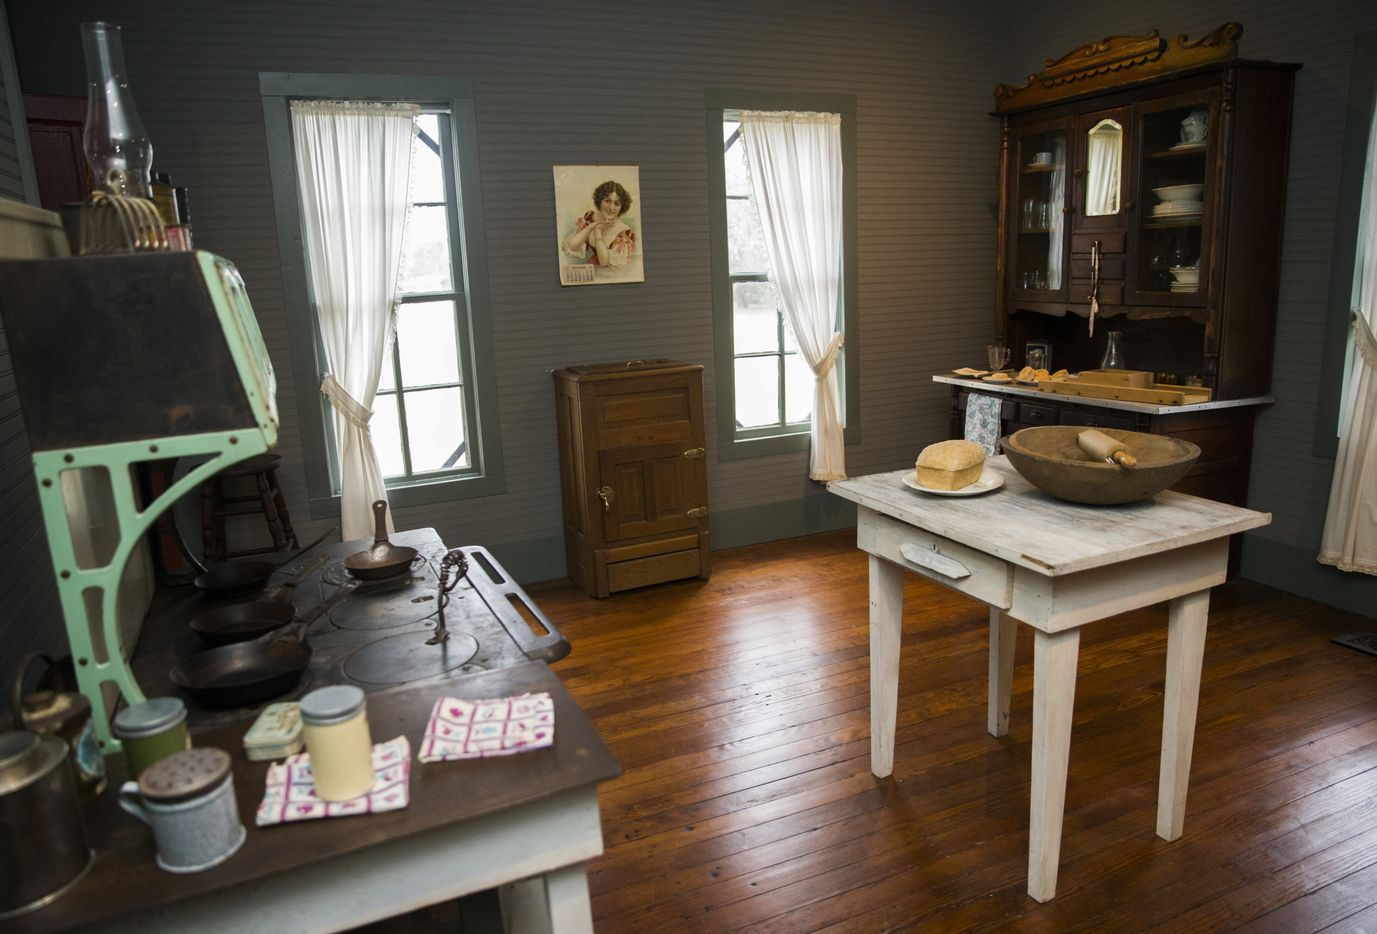 The kitchen inside the Lawrence House is part of the original three rooms built in 1874 and one of the areas that all Mesquite third-graders tour each year.